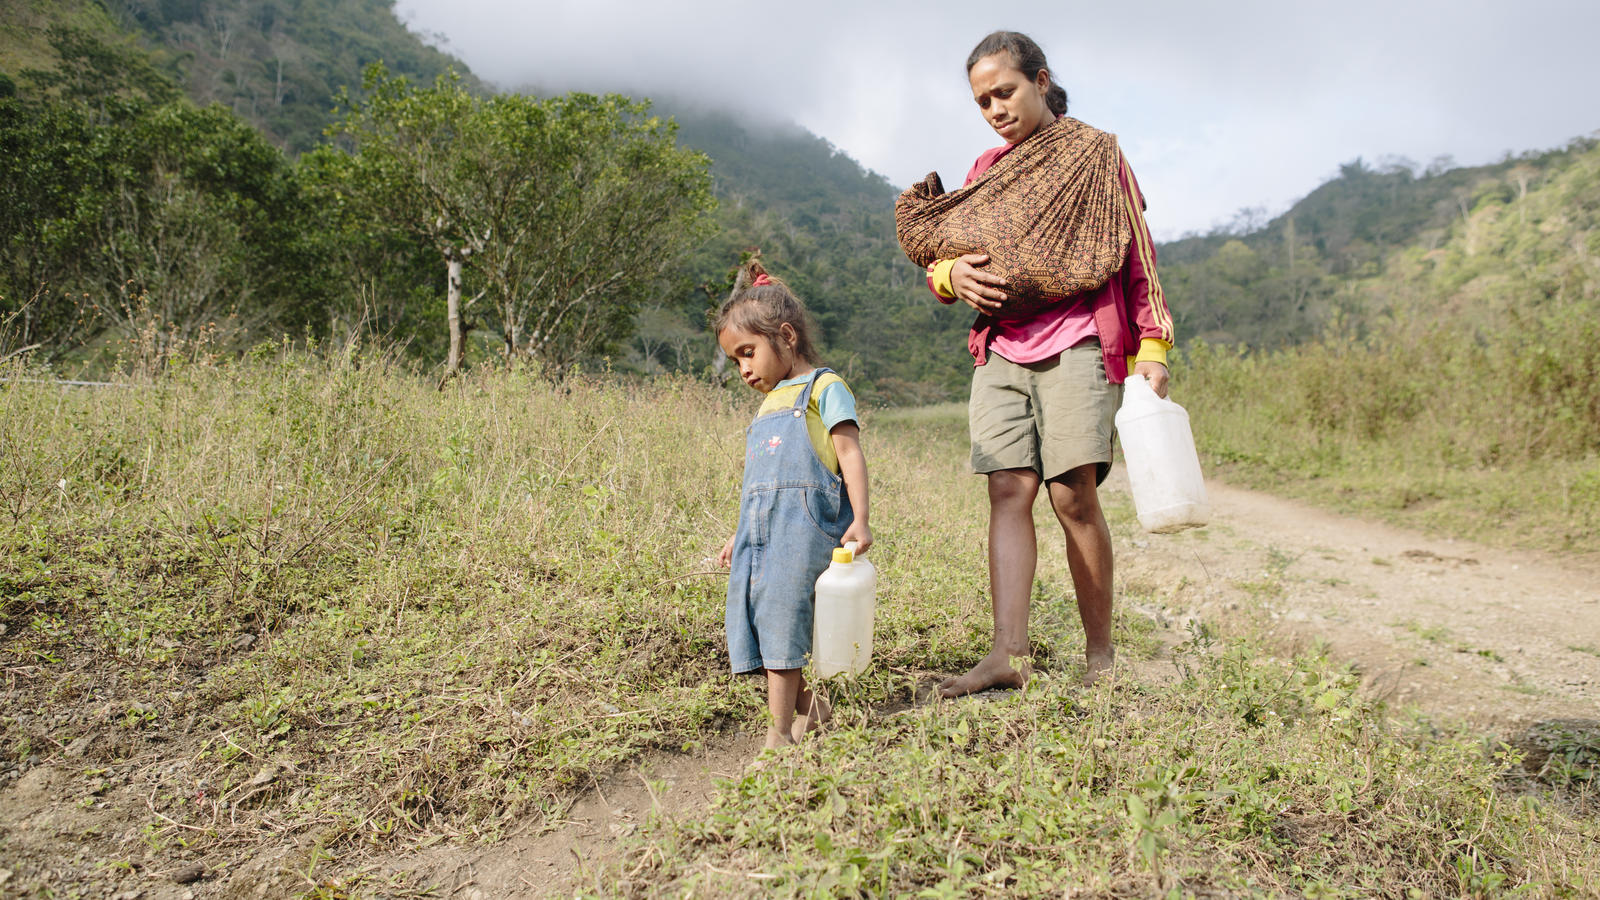 Filomena and her daughter Fidelia on their way to collect water from an unsafe stream in Timor-Leste.